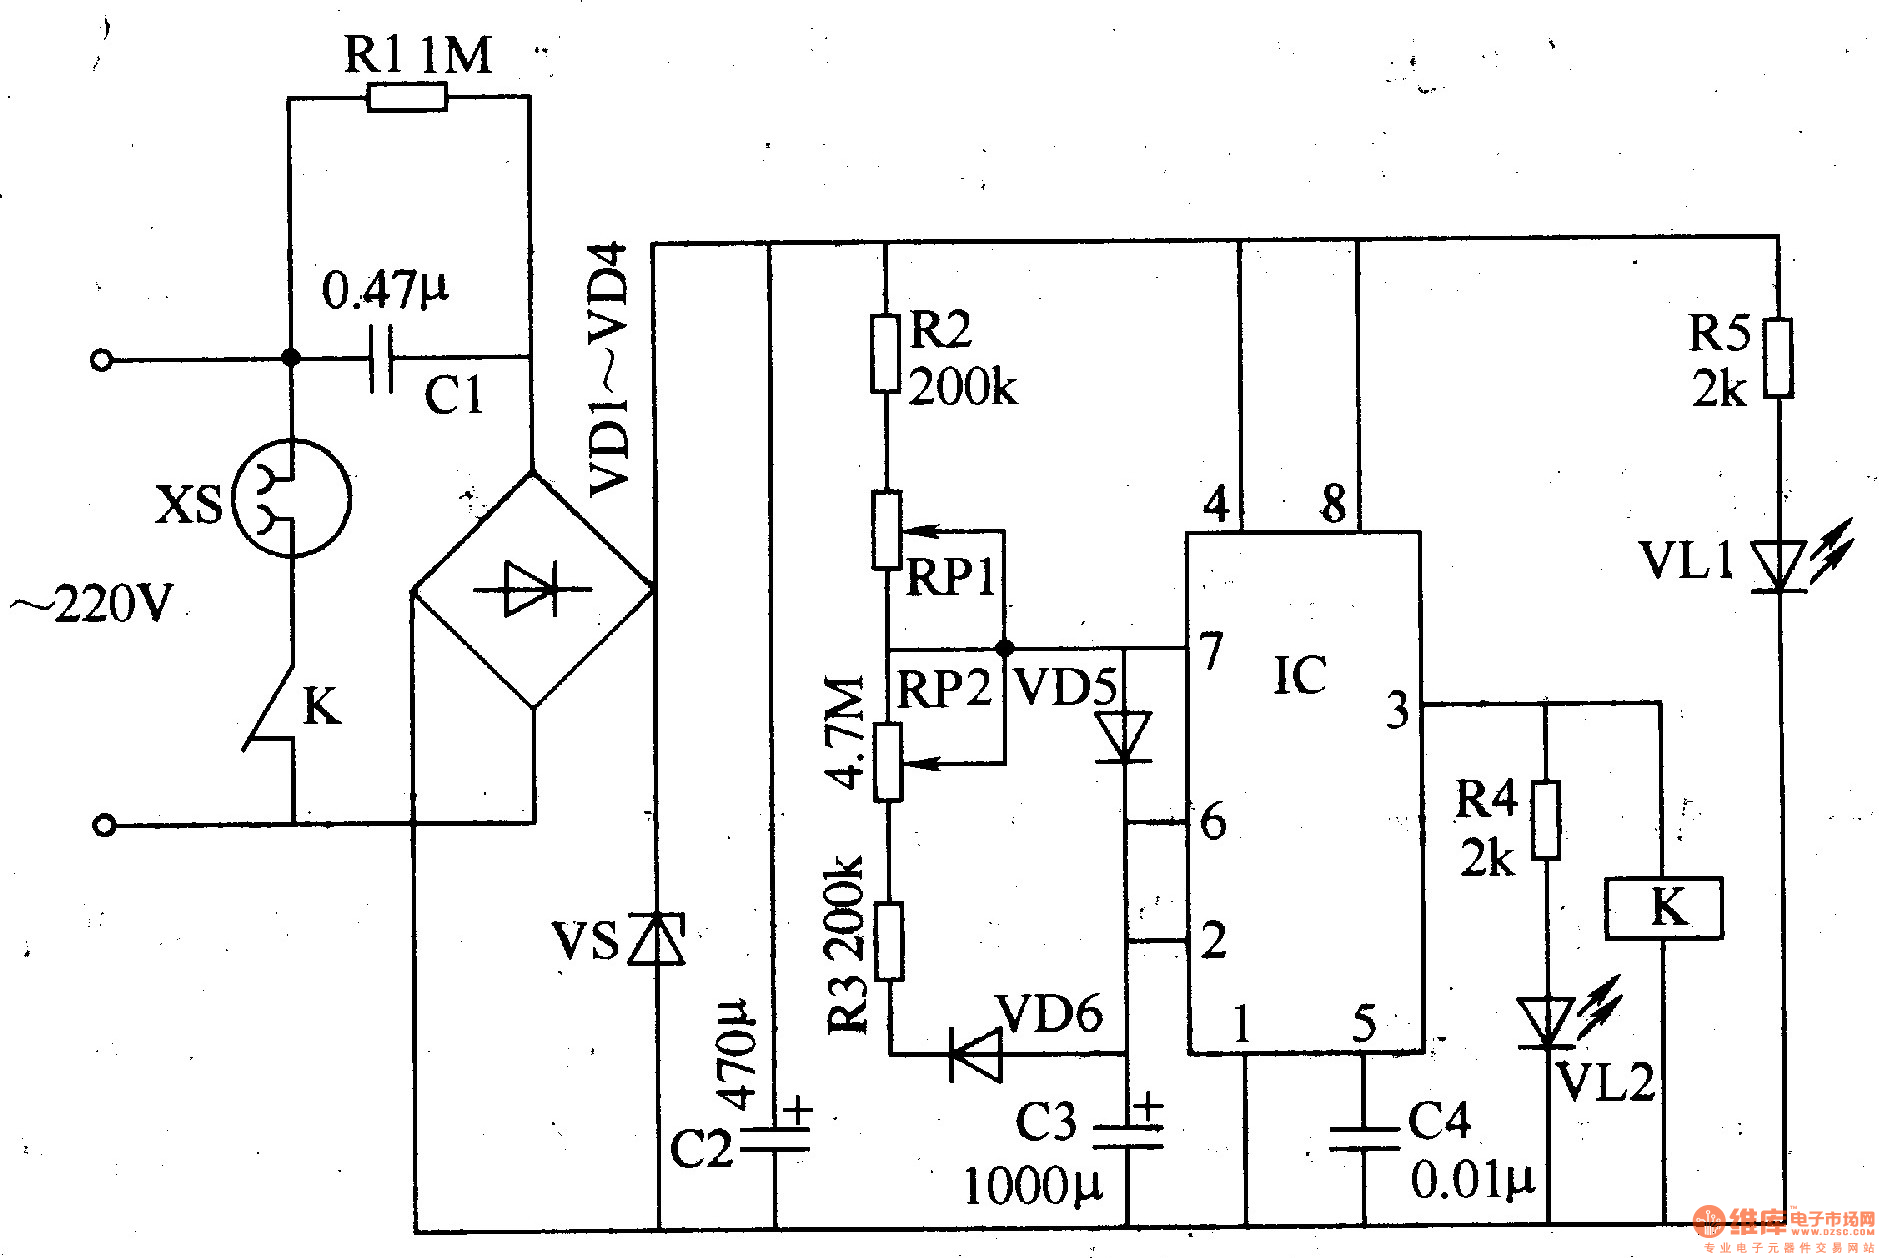 cycle timing controller 5 - time control - control circuit - circuit diagram